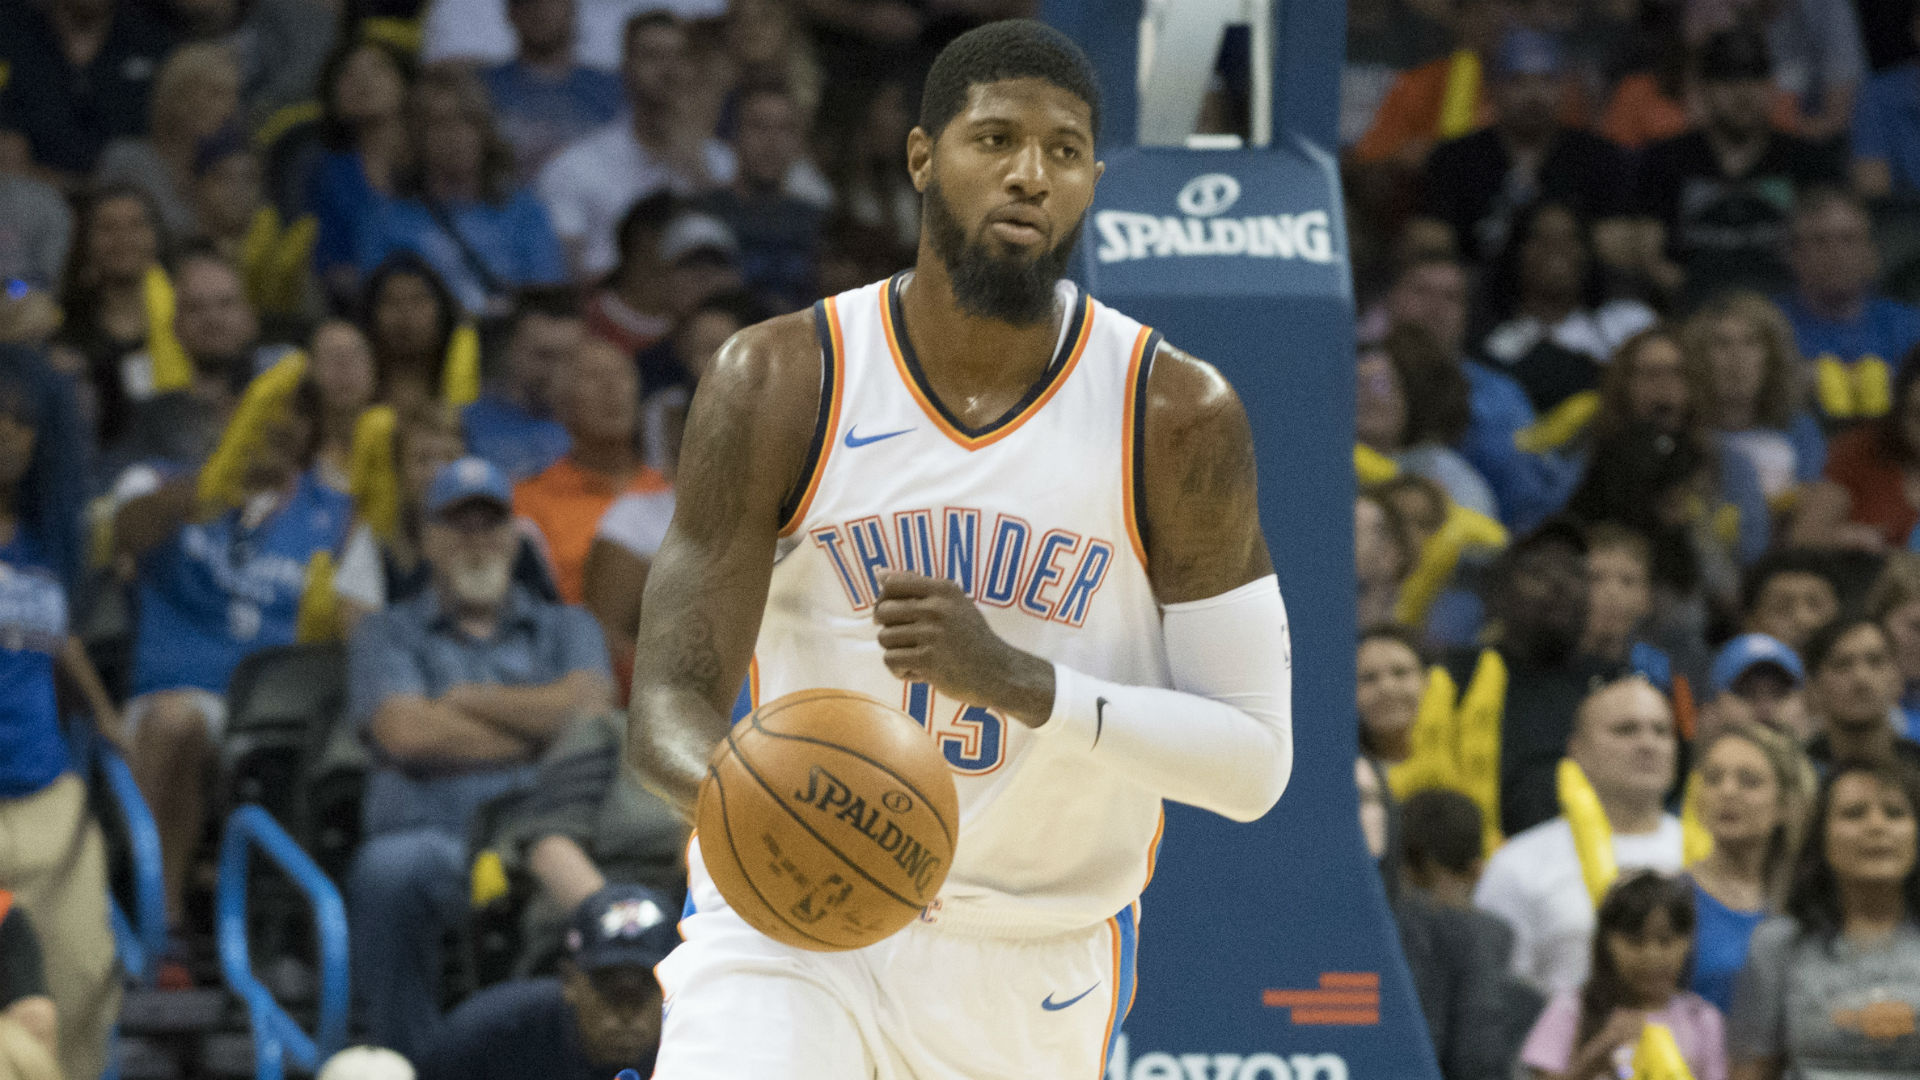 Paul George sidelined up to 8 weeks following knee procedure